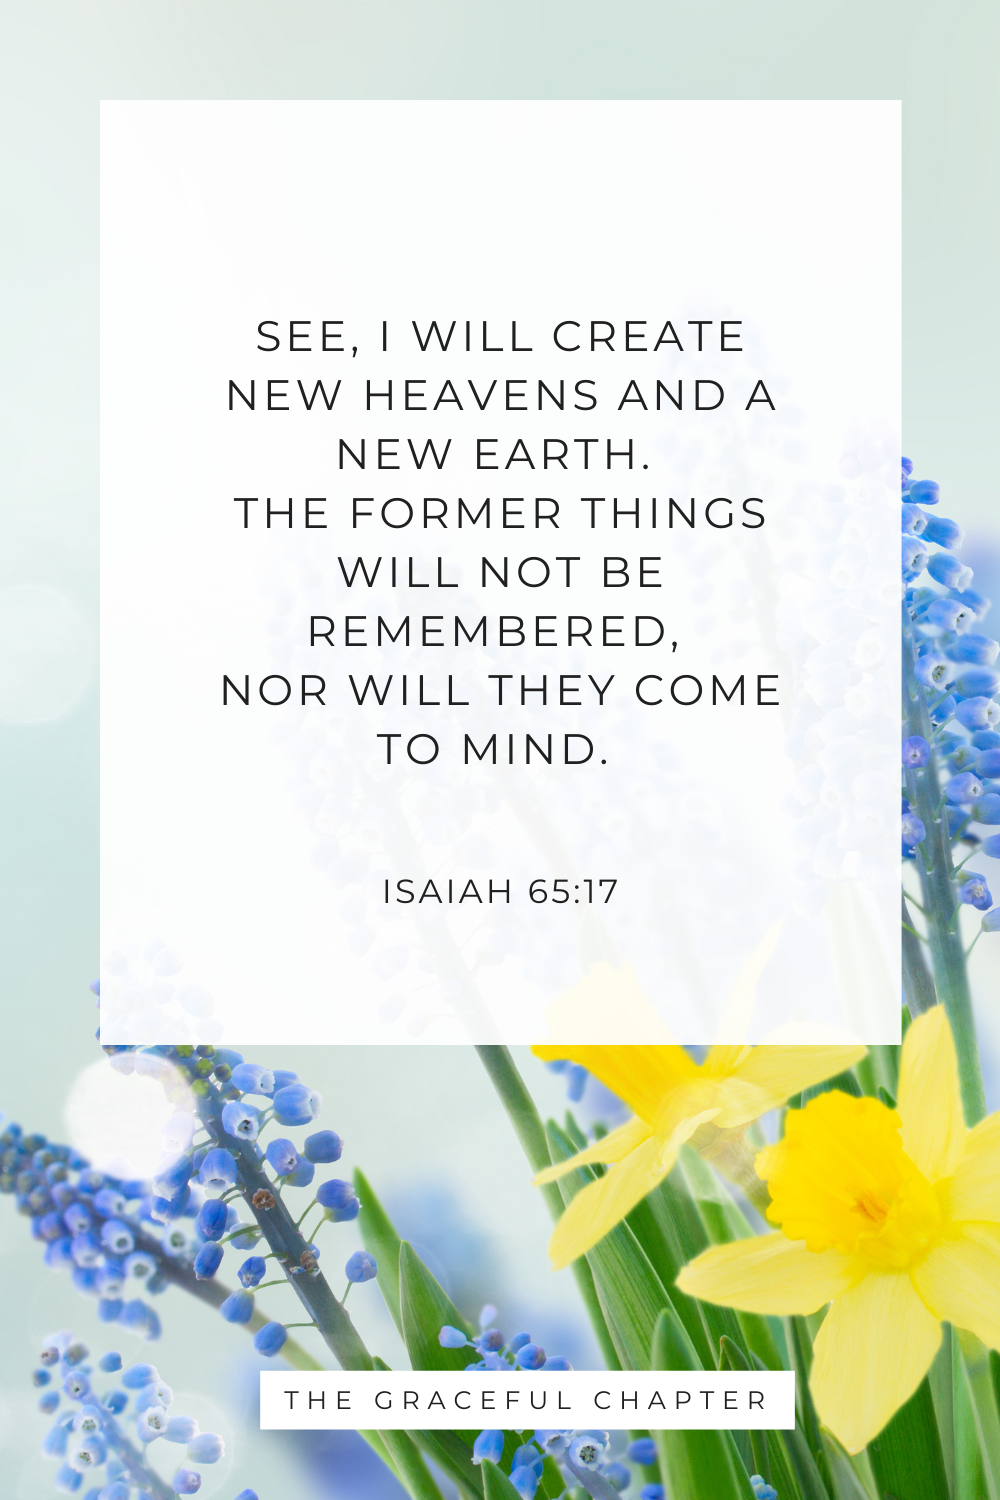 See, I will create new heavens and a new earth. The former things will not be remembered, nor will they come to mind. Isaiah 65:17